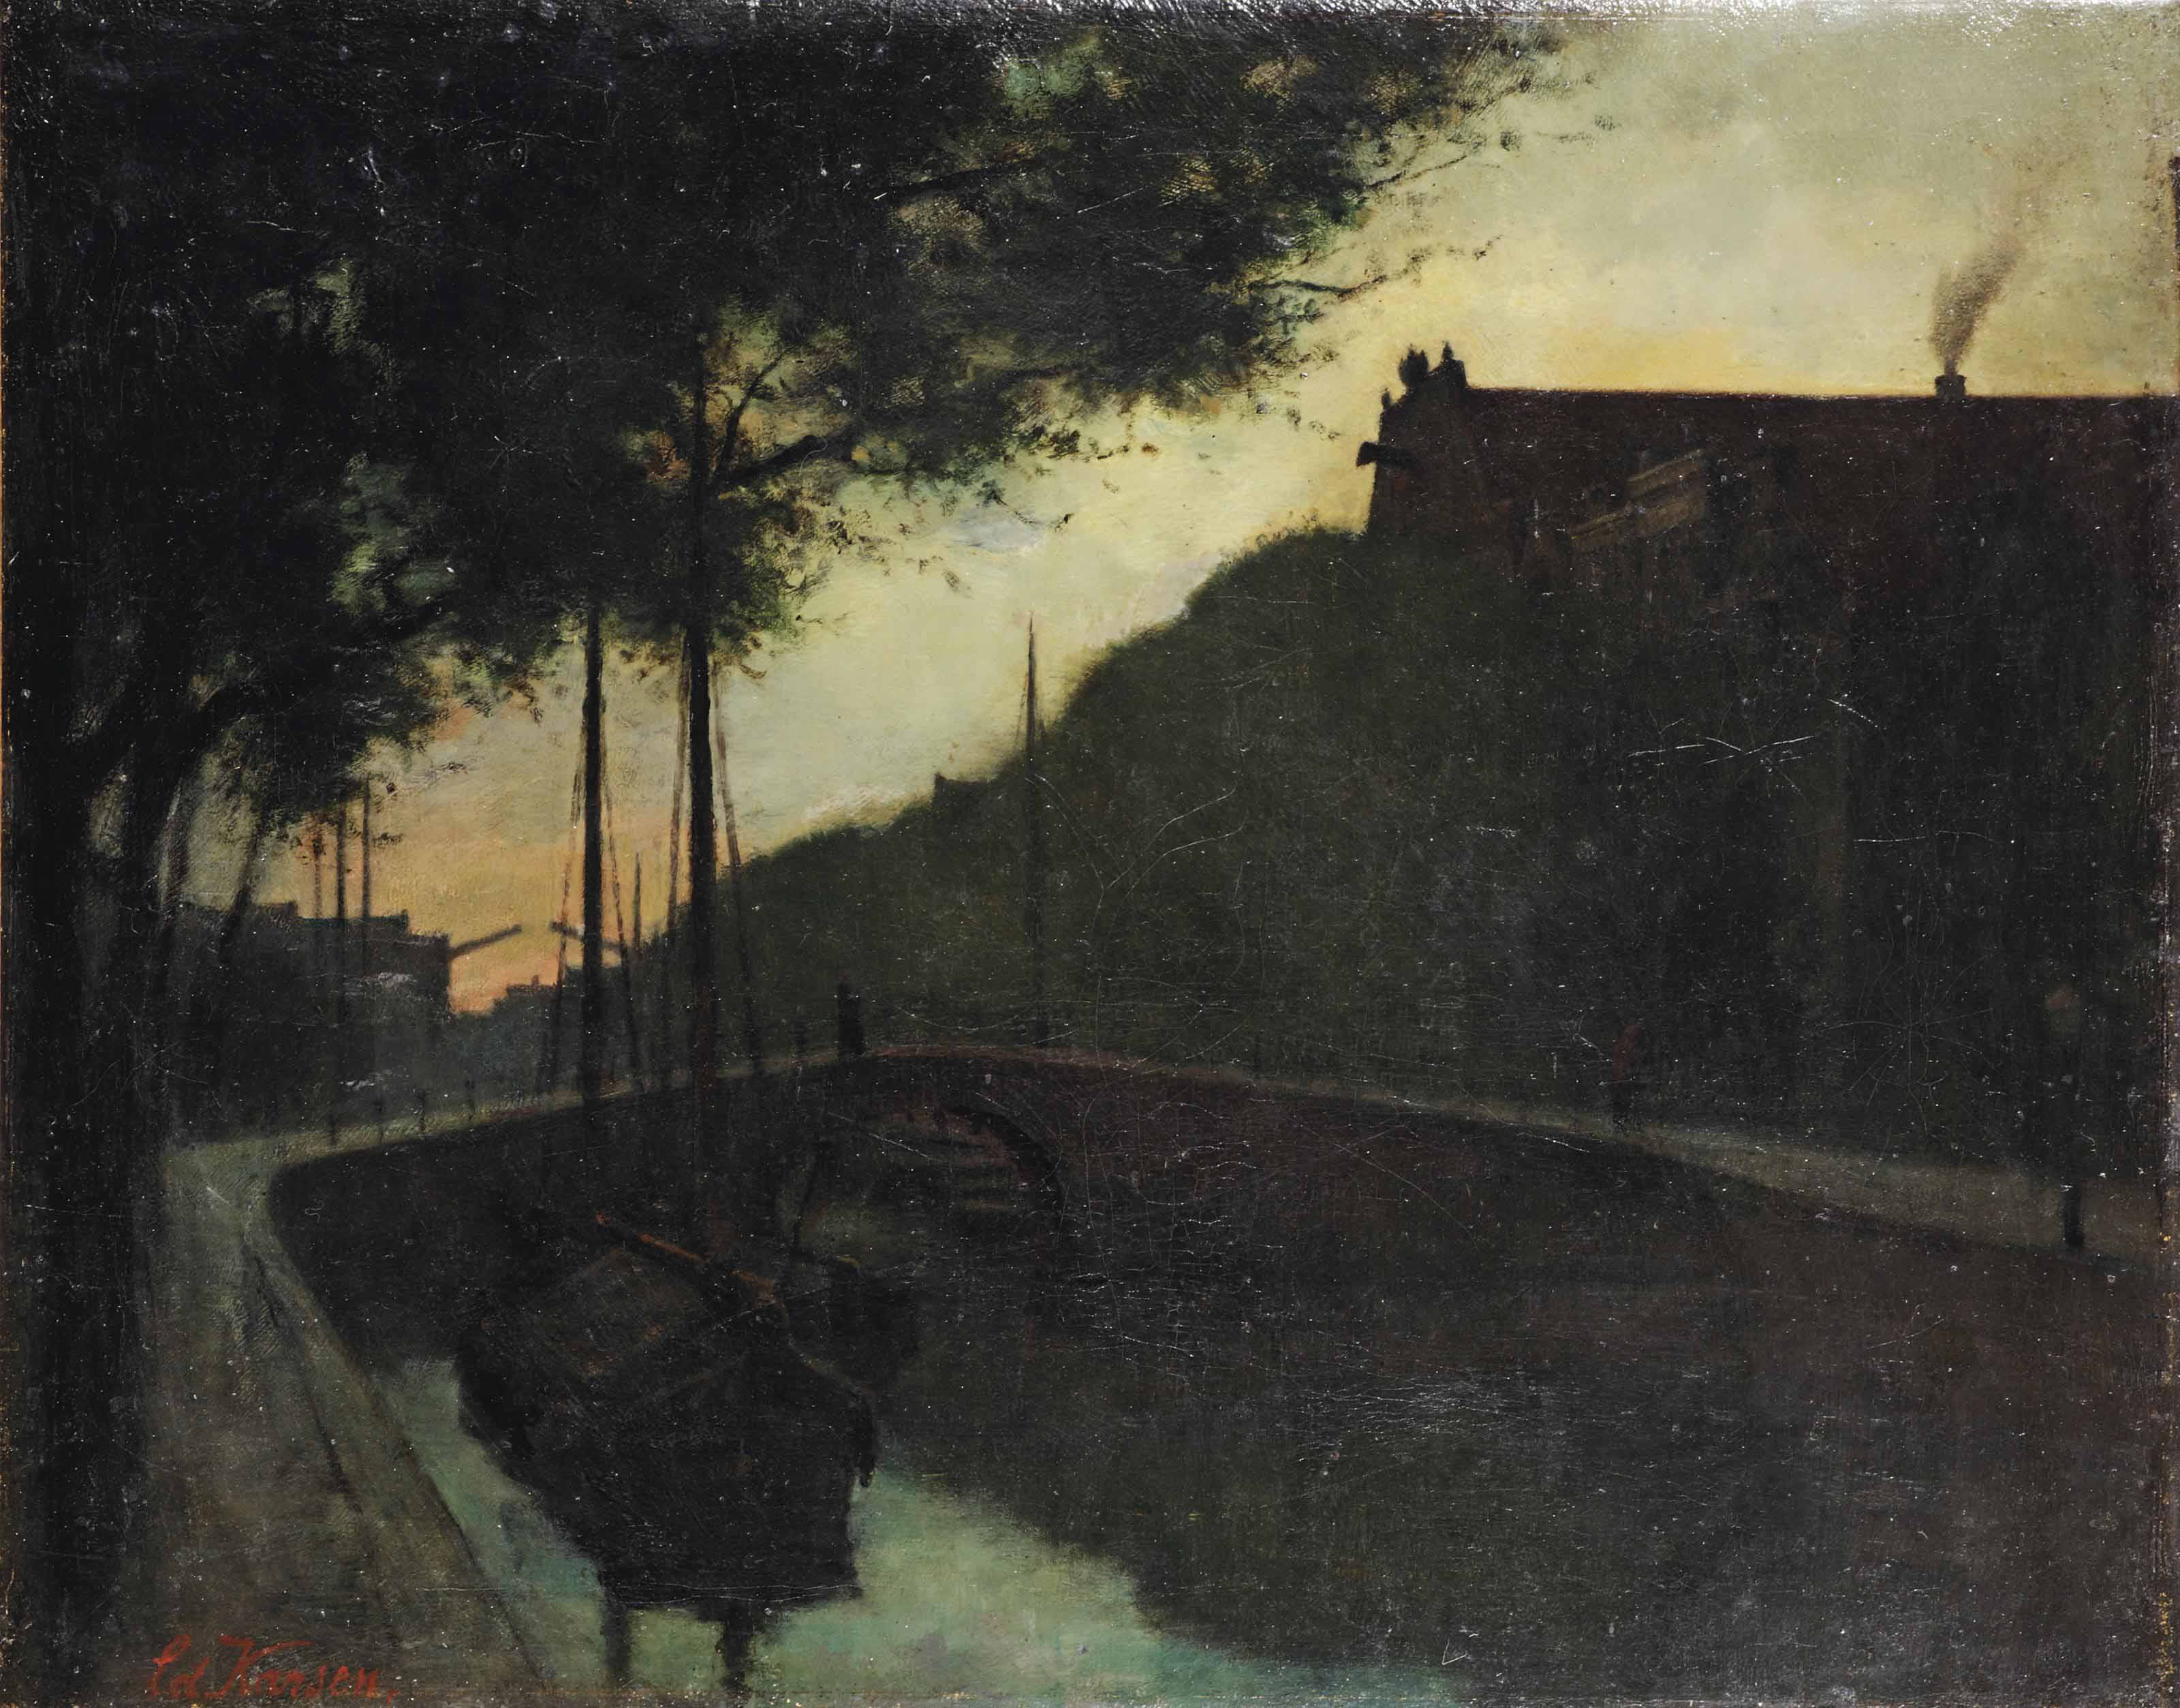 Oude stad: A sunset view of a canal